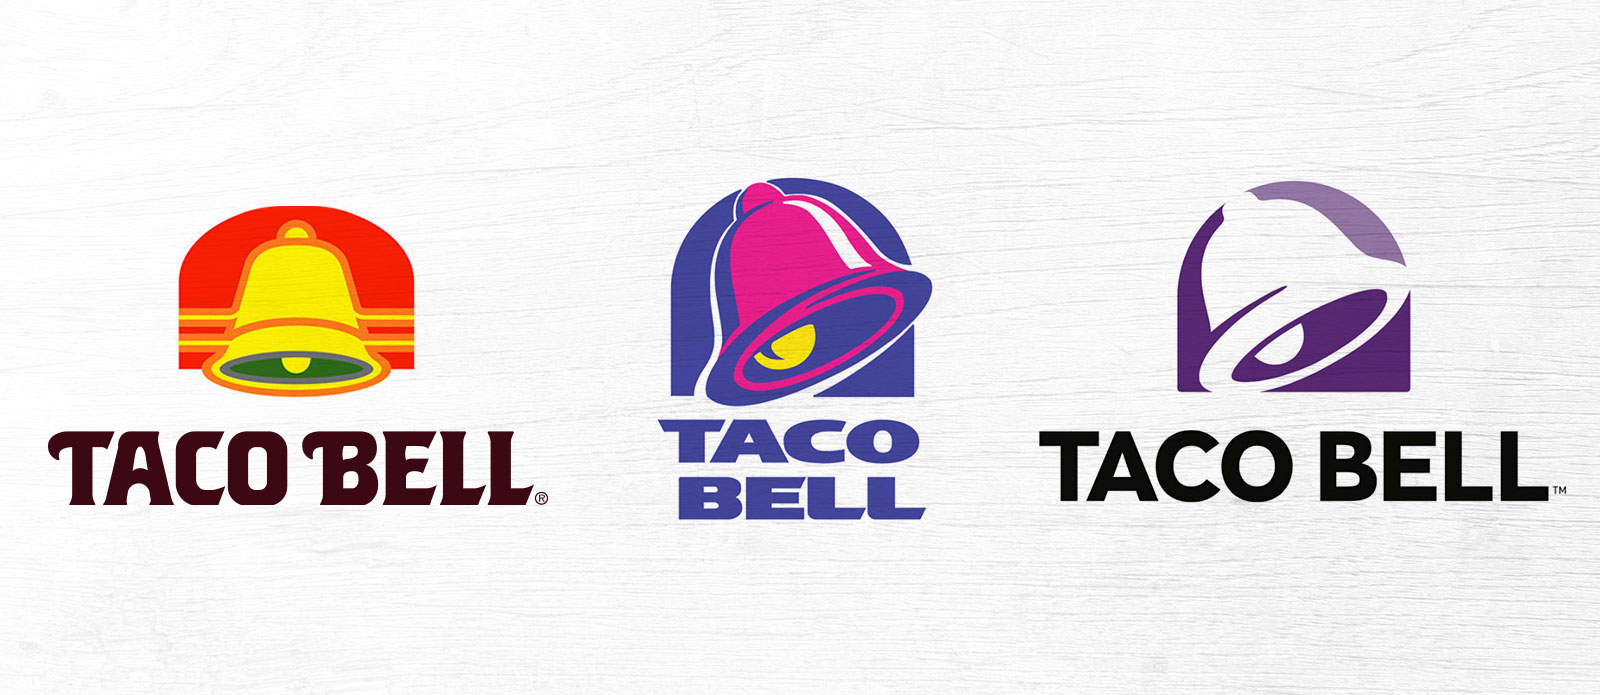 History of the Taco Bell Logo